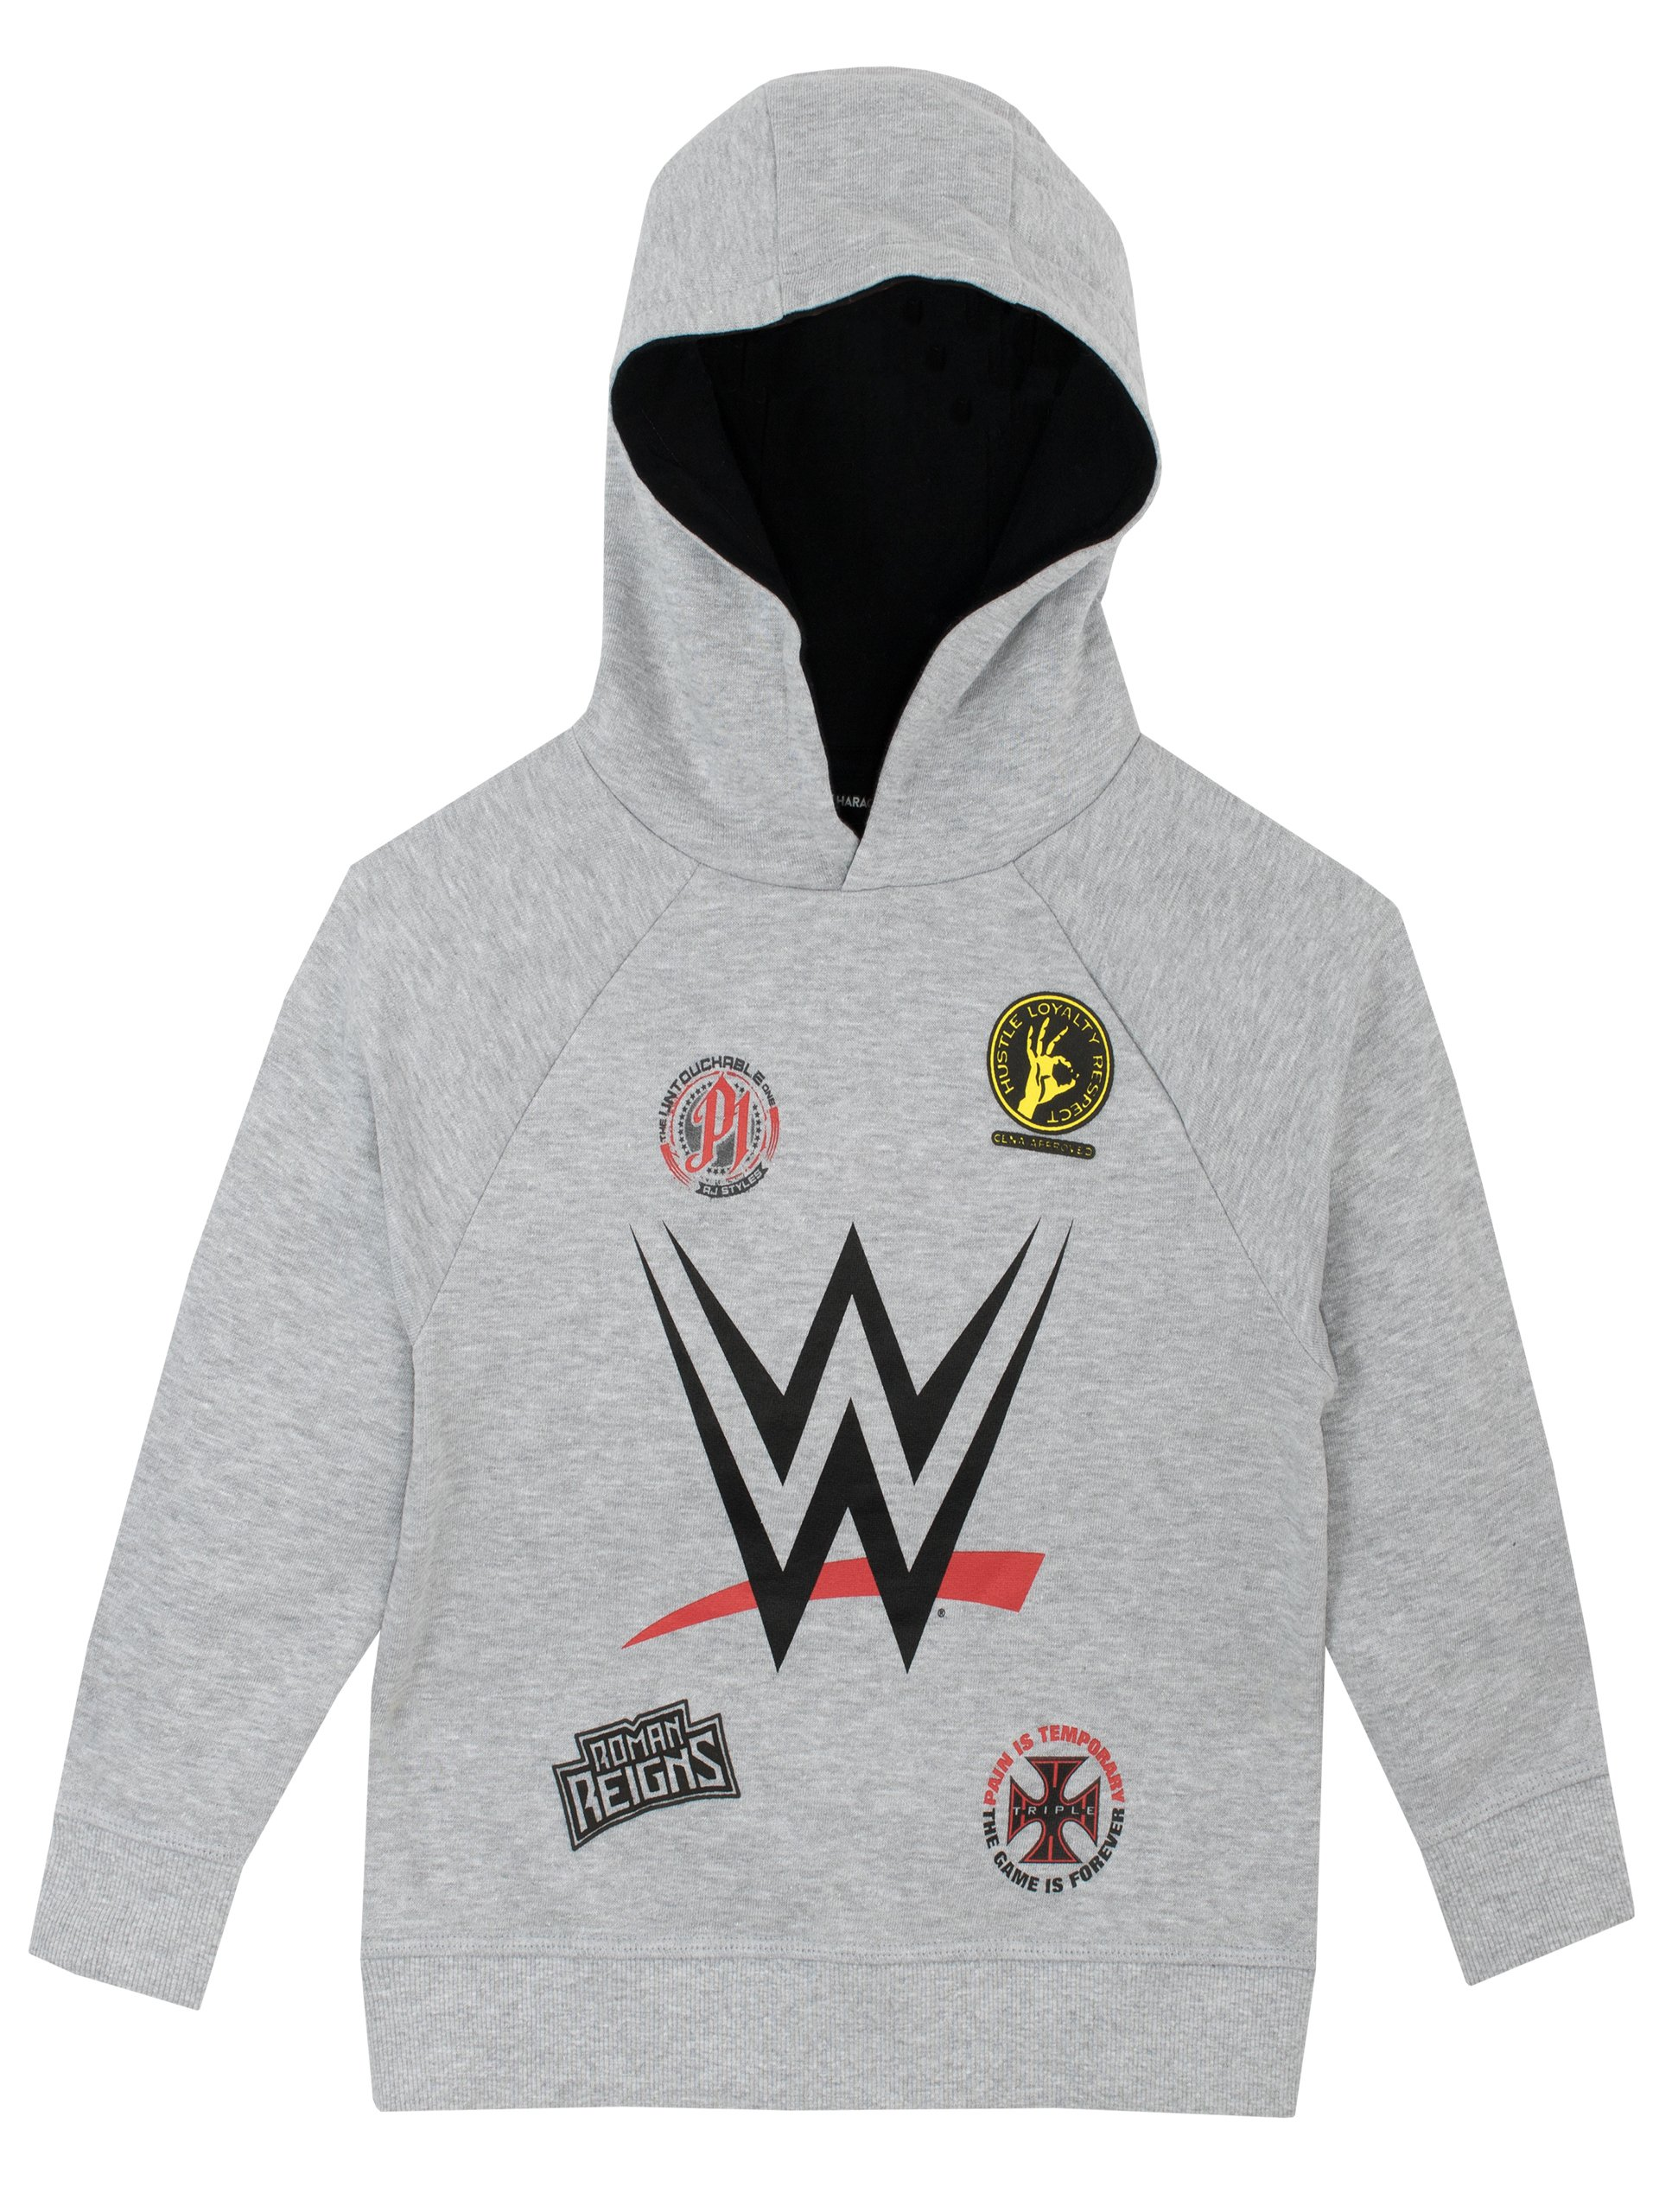 WWE Boys' World Wrestling Entertainment Hoodie Size 10